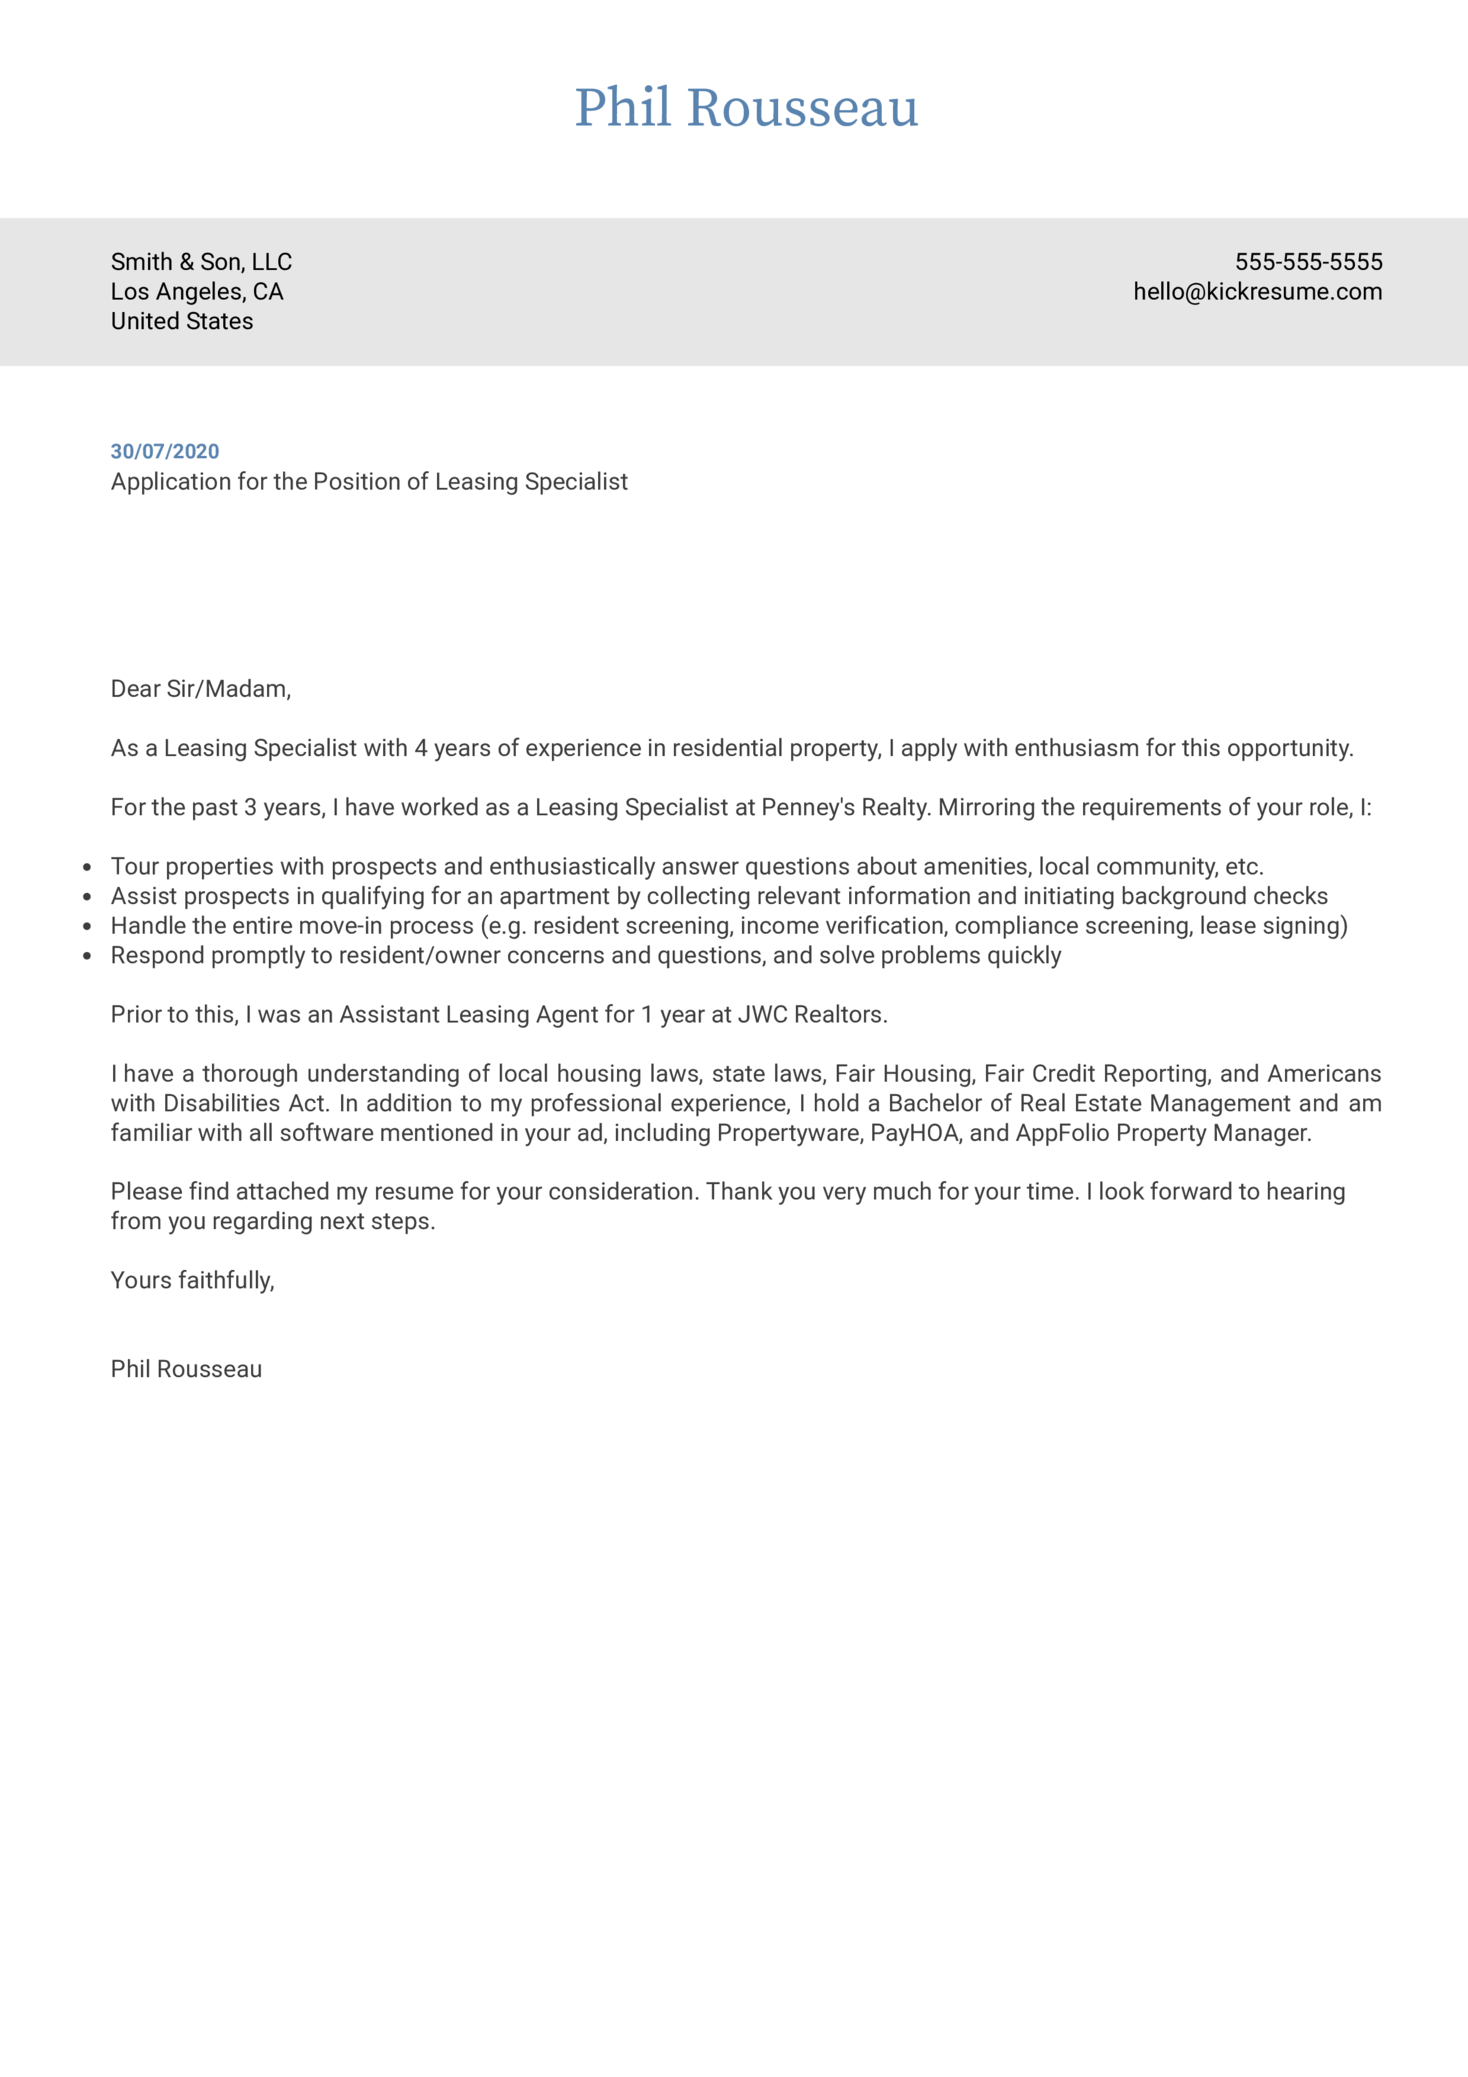 Leasing Specialist Cover Letter Sample